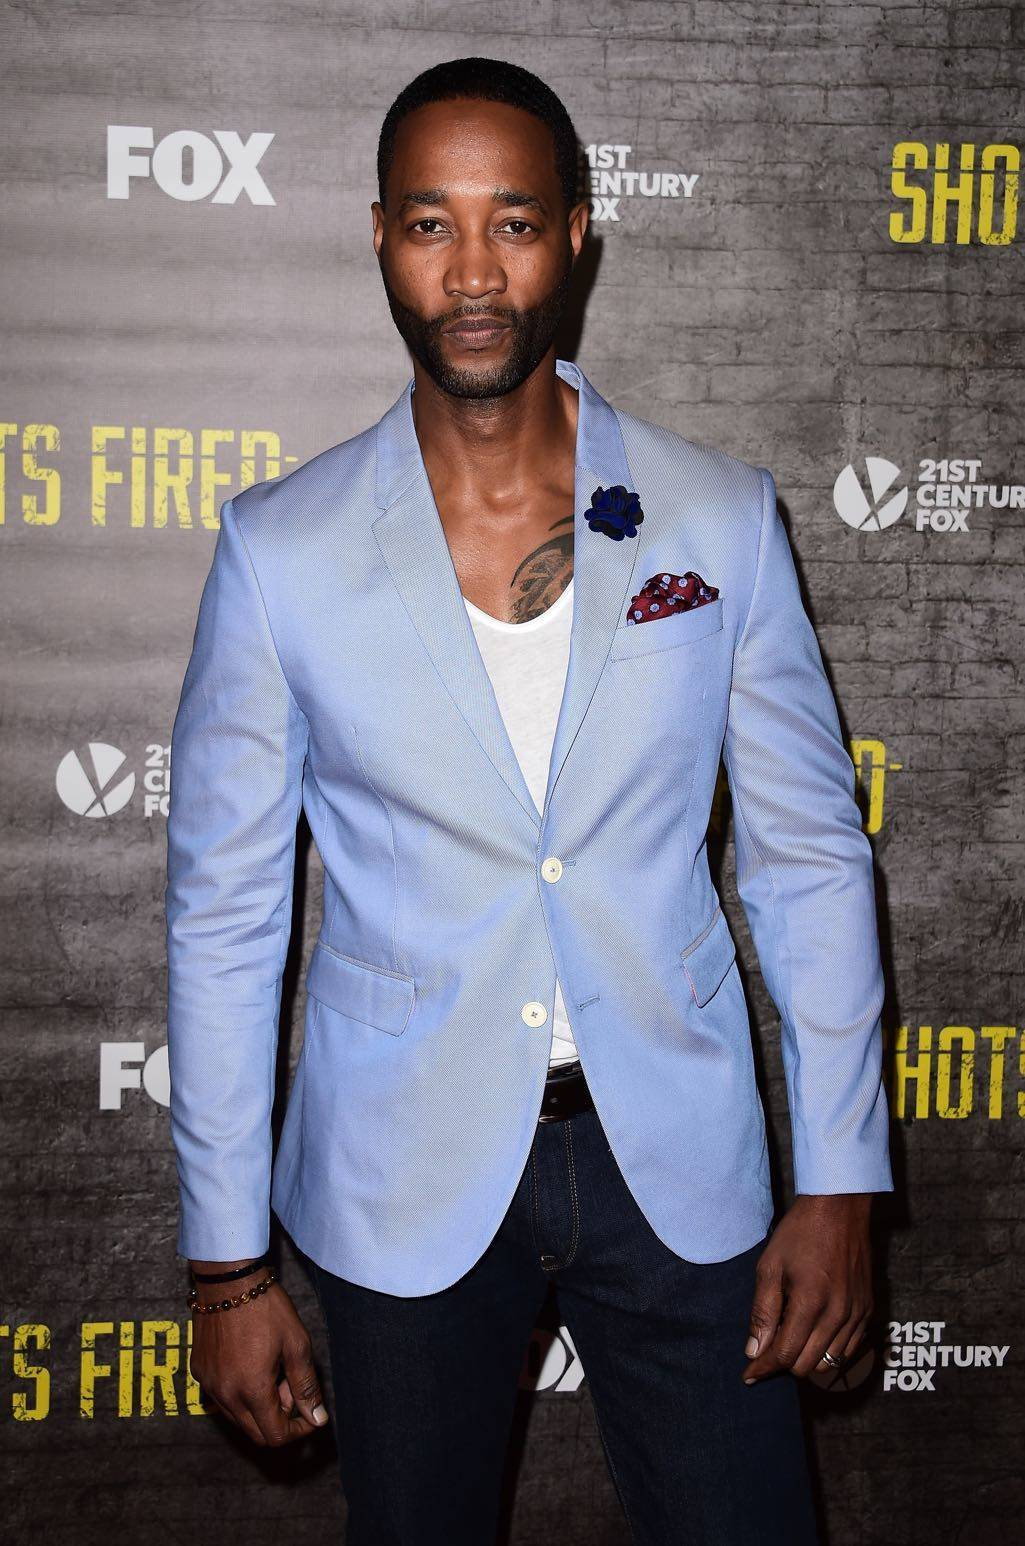 SHOTS FIRED: Cast member Yohance Myles arrives at the SHOTS FIRED red carpet premiere screening and discussion at the Pacific Design Center on Thursday, March 16, in Los Angeles, CA. SHOTS FIRED premieres Wednesday, March 22 (8:00-9:00 PM ET/PT) on FOX. © 2017 FOX BROADCASTING CR: Scott Kirkland/FOX